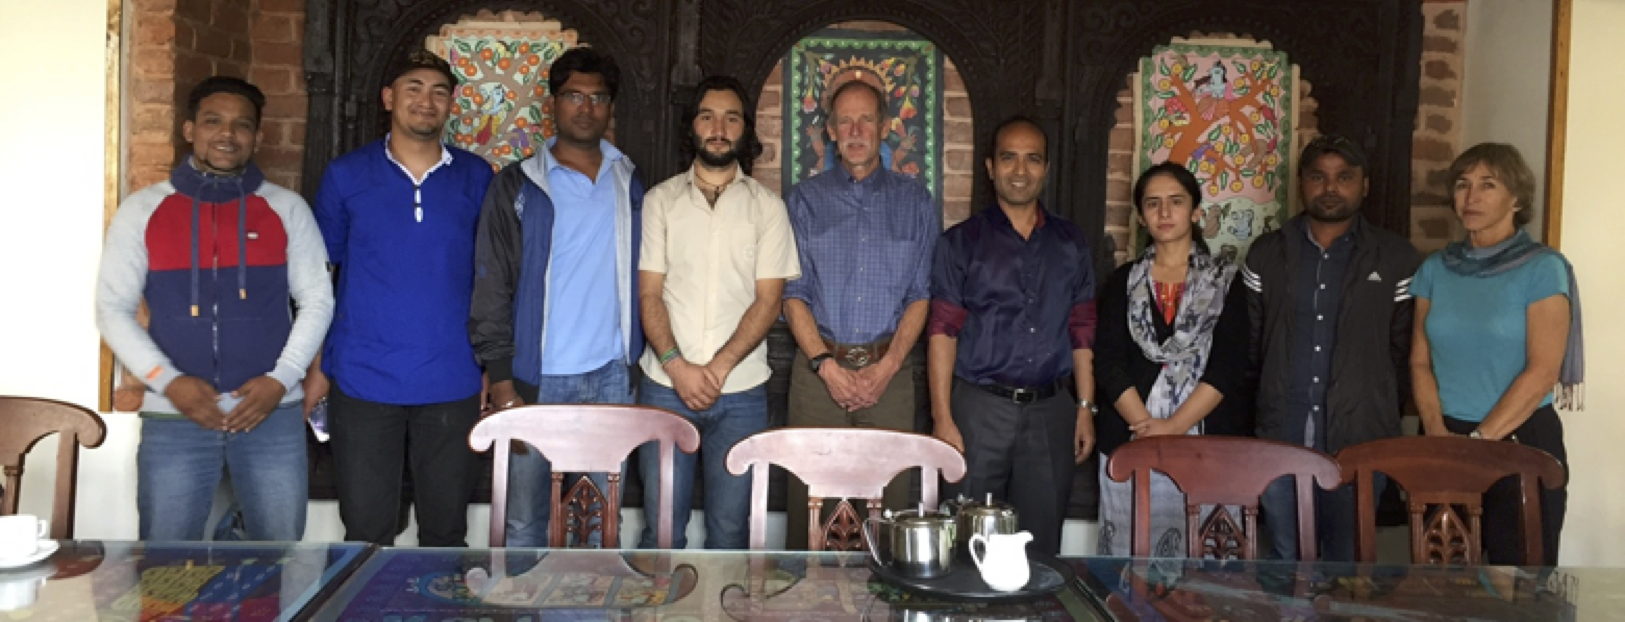 Left to right: Amrit Thapa, Nepal; Rakesh Kayastha, Research Associate, Nepal; Niraj Kumar, India; Javed Hassan, Pakistan; Richard Armstrong, Rijan Kayastha, Ms. Iram Bano, Pakistan; Ramesh Kumar, India; Betsy Armstrong